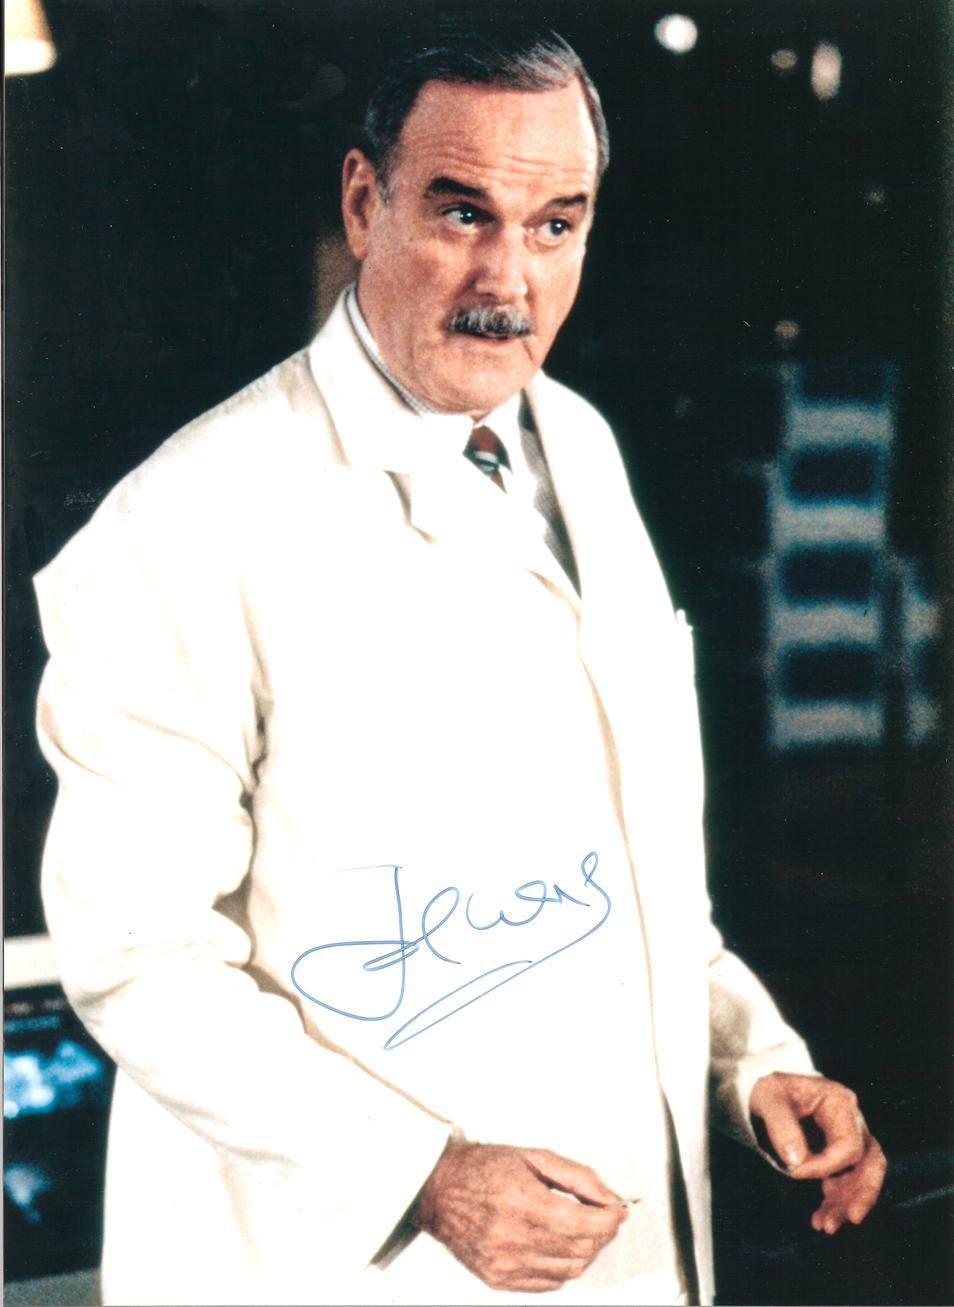 John Cleese - Photos